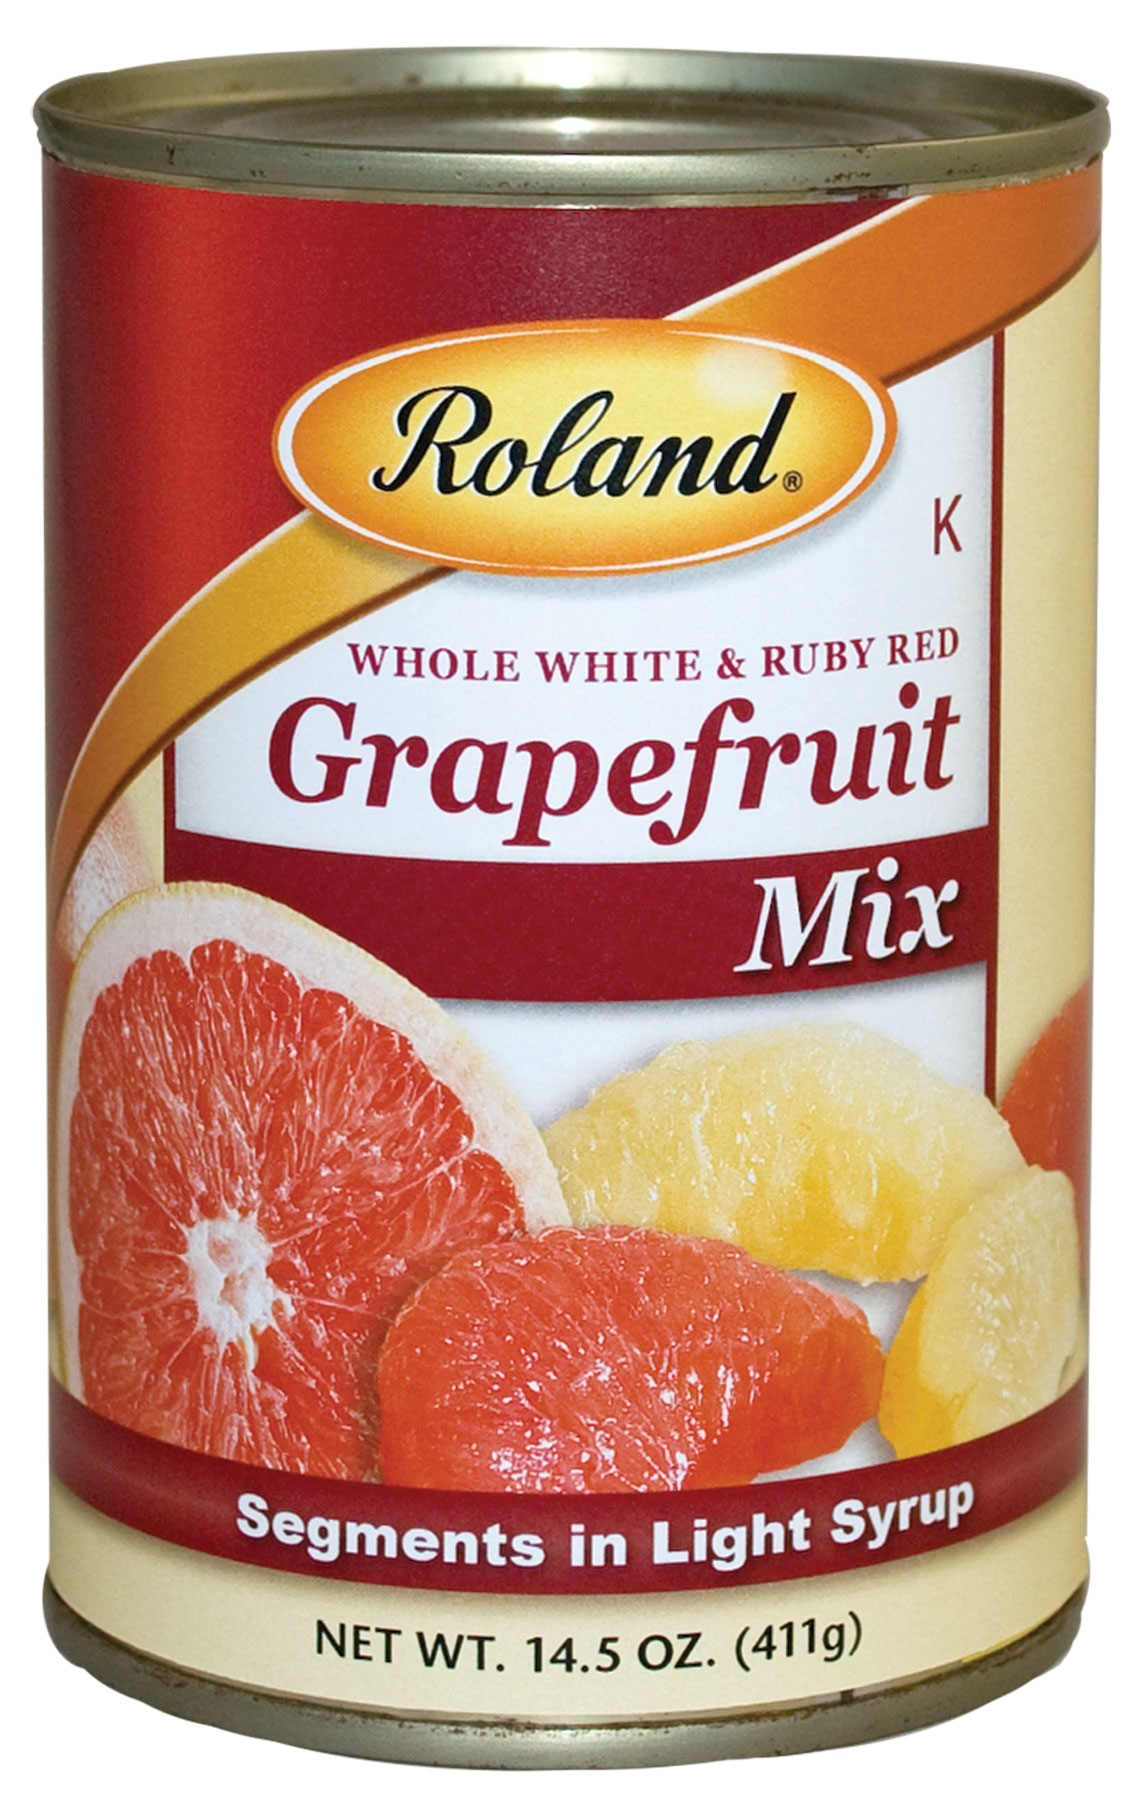 Roland Grapefruit Mix, Segments In Light Syrup, 14.5 Oz by Roland Corporation